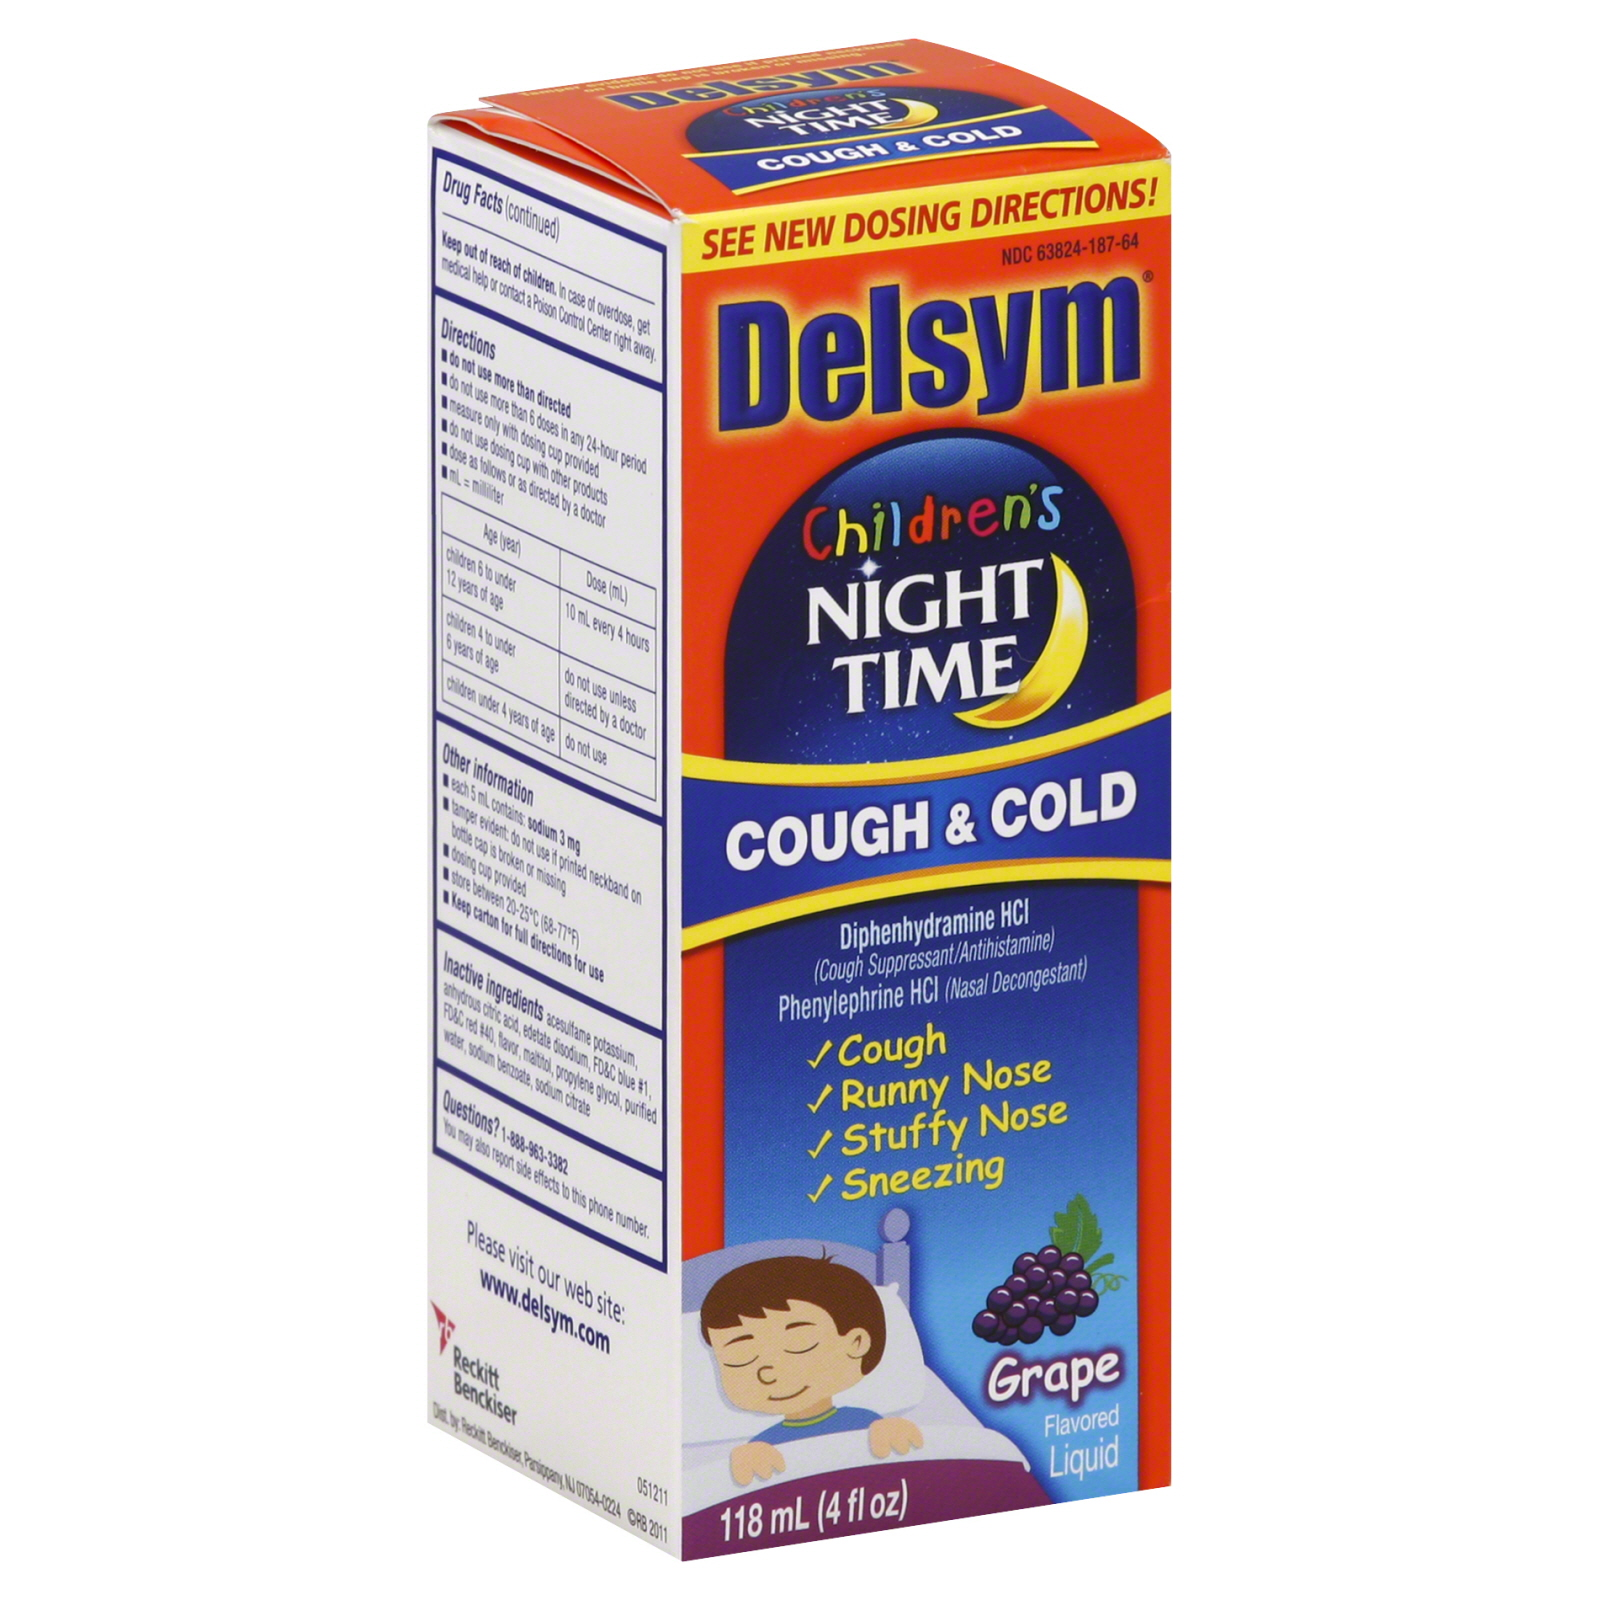 Buy baby cough cold - Delsym Children\'s Cough & Cold, Night Time, Grape Flavored Liquid, 4